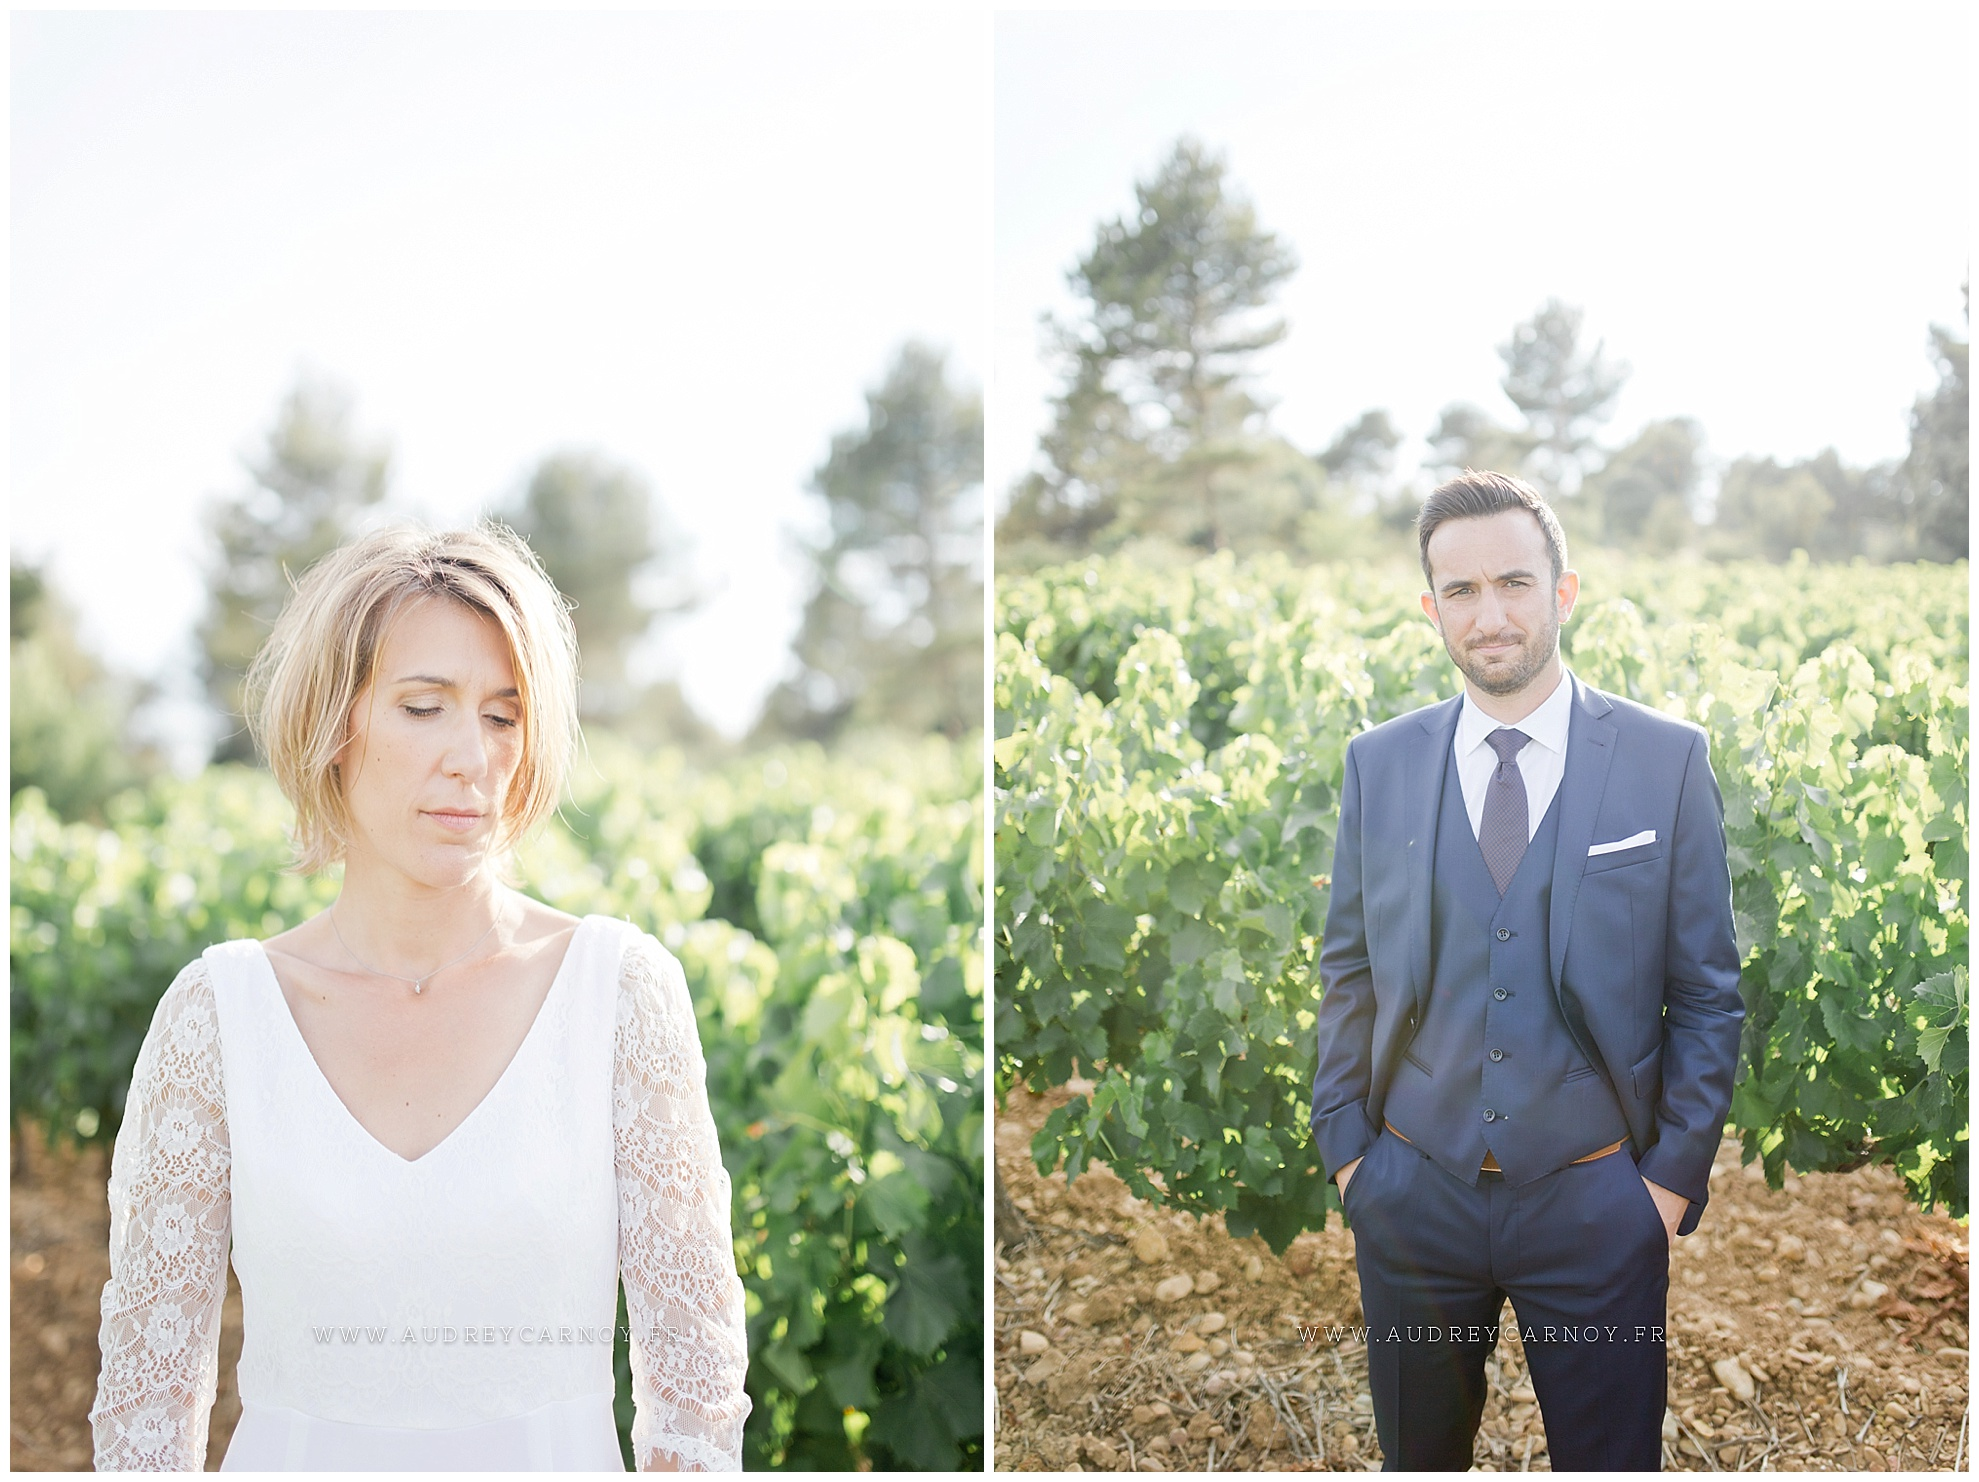 Mariage Pertuis | Laurence & Anthony 33